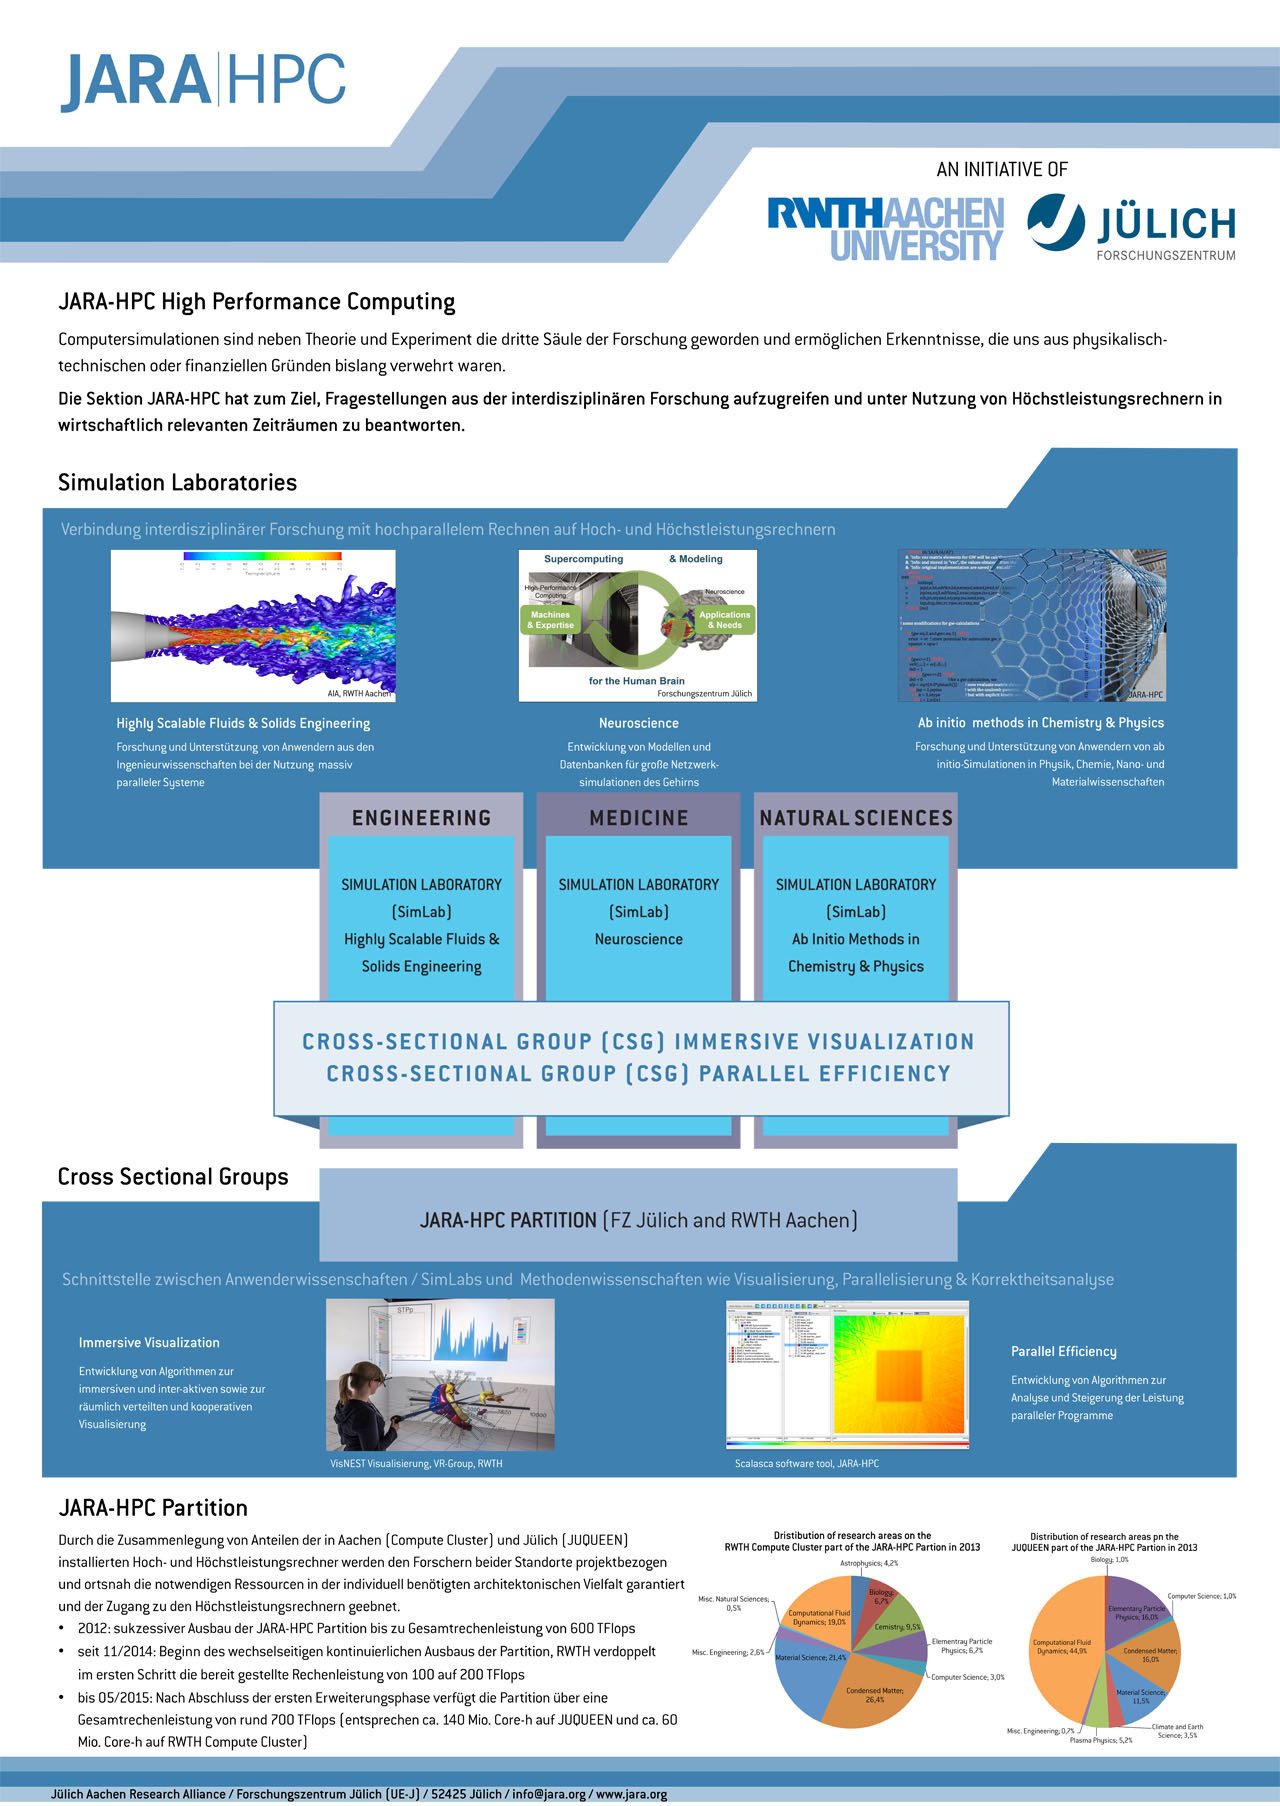 JARA-HPC: High Performance Computing